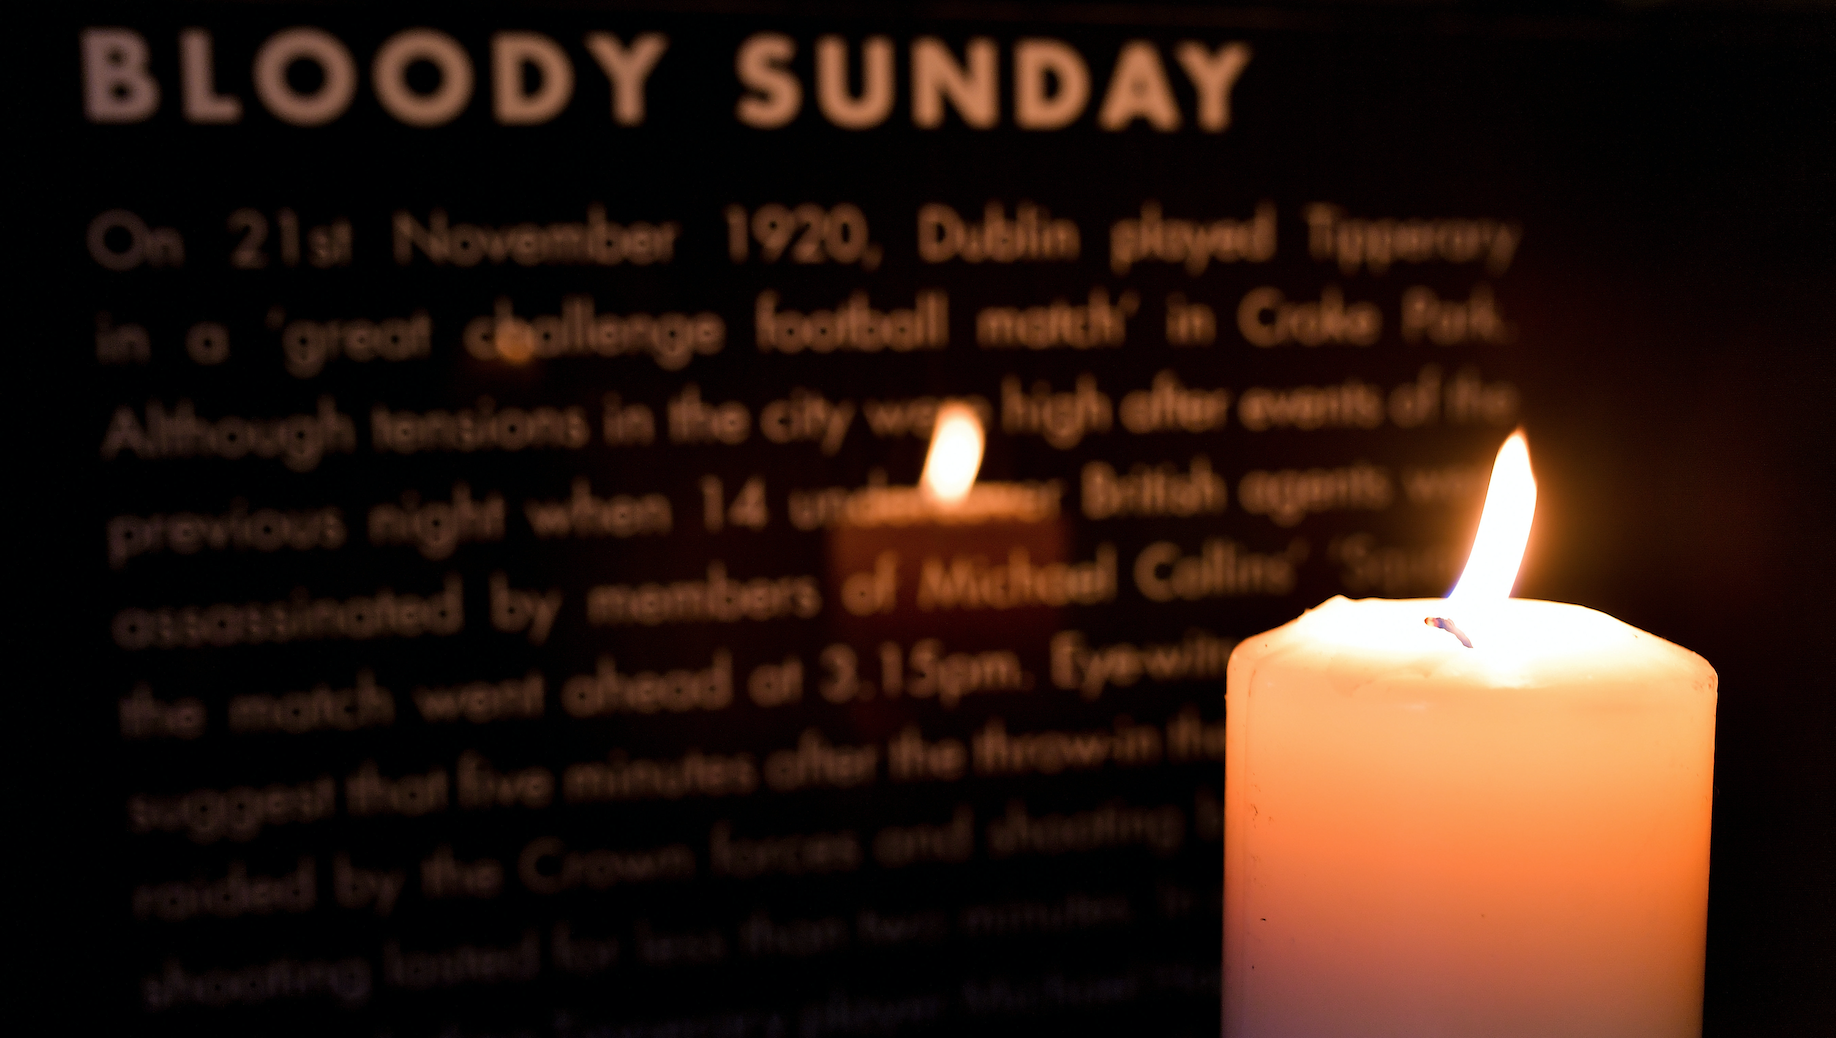 B100dy Sunday – A candle at dusk